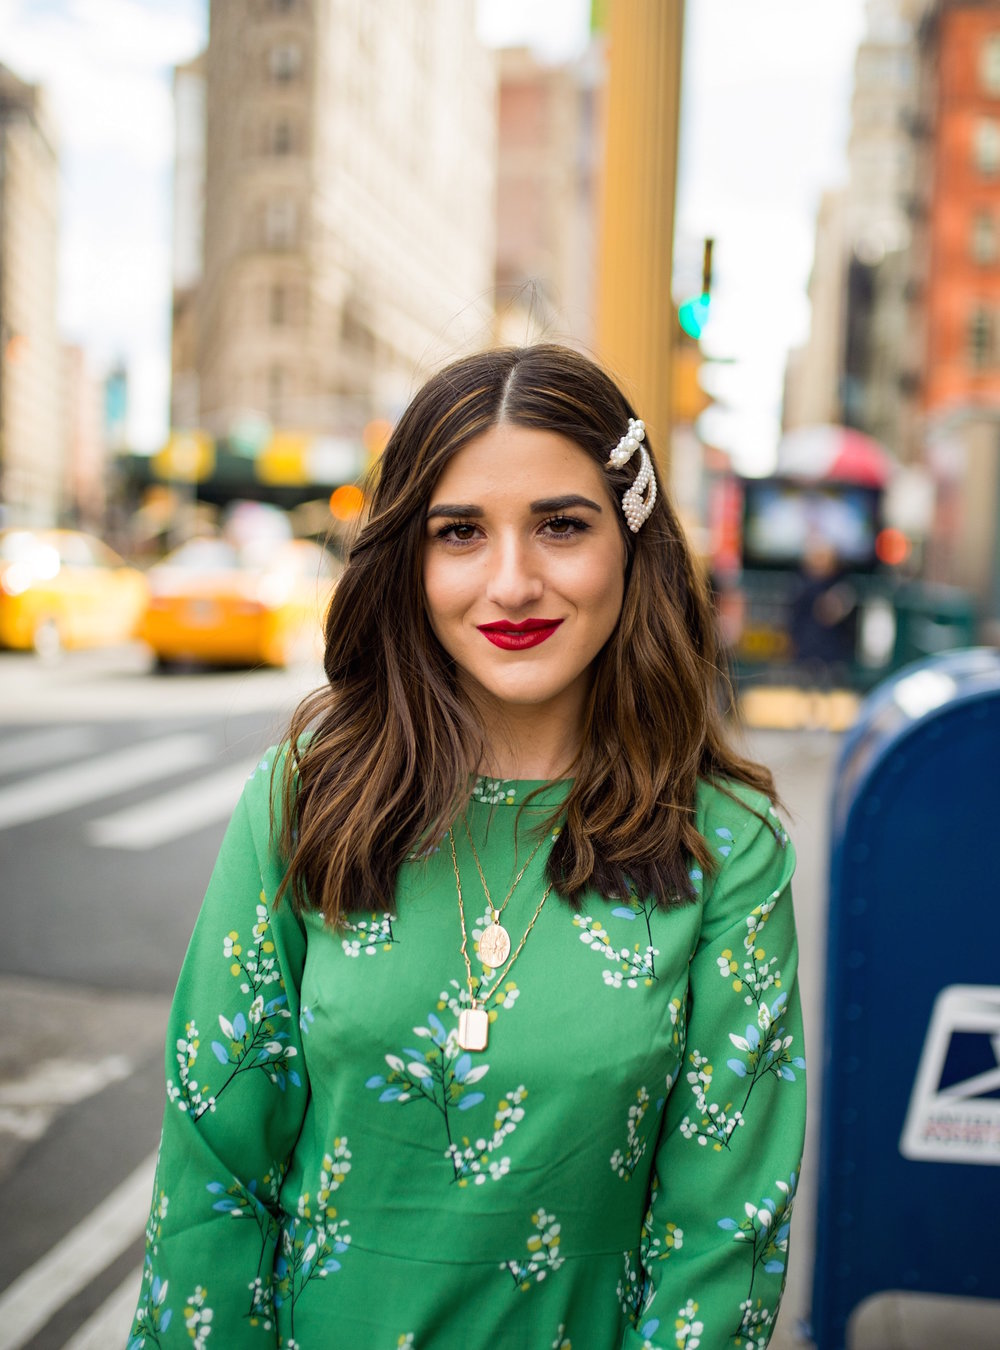 Fresh Cut And Color Sharon Dorram Color at Sally Hershberger Esther Santer Fashion Blog NYC Street Style Blogger Short Layered Haircut Balayage Honey Highlights New York City Upscale Salon Chop Natural  Inspo Spring Pearl Barrettes Hair Accessories.JPG